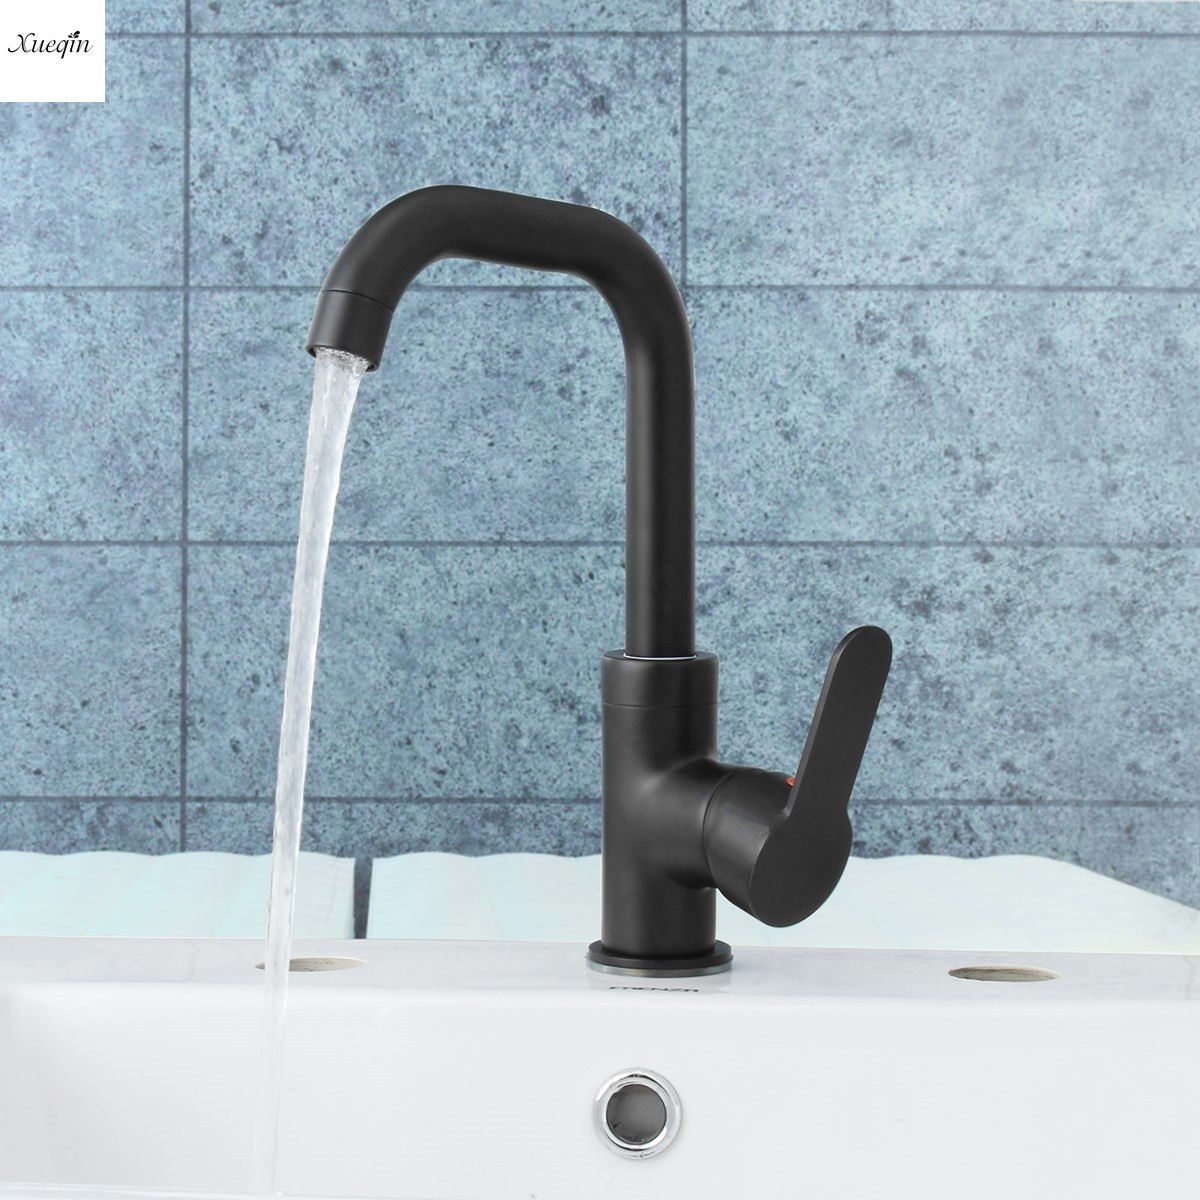 Brass Black Painted 360Rotation Bathroom Sink Faucet Spout Single Handle Kitchen Basin Faucet Hot and Cold Water Mixer Tap